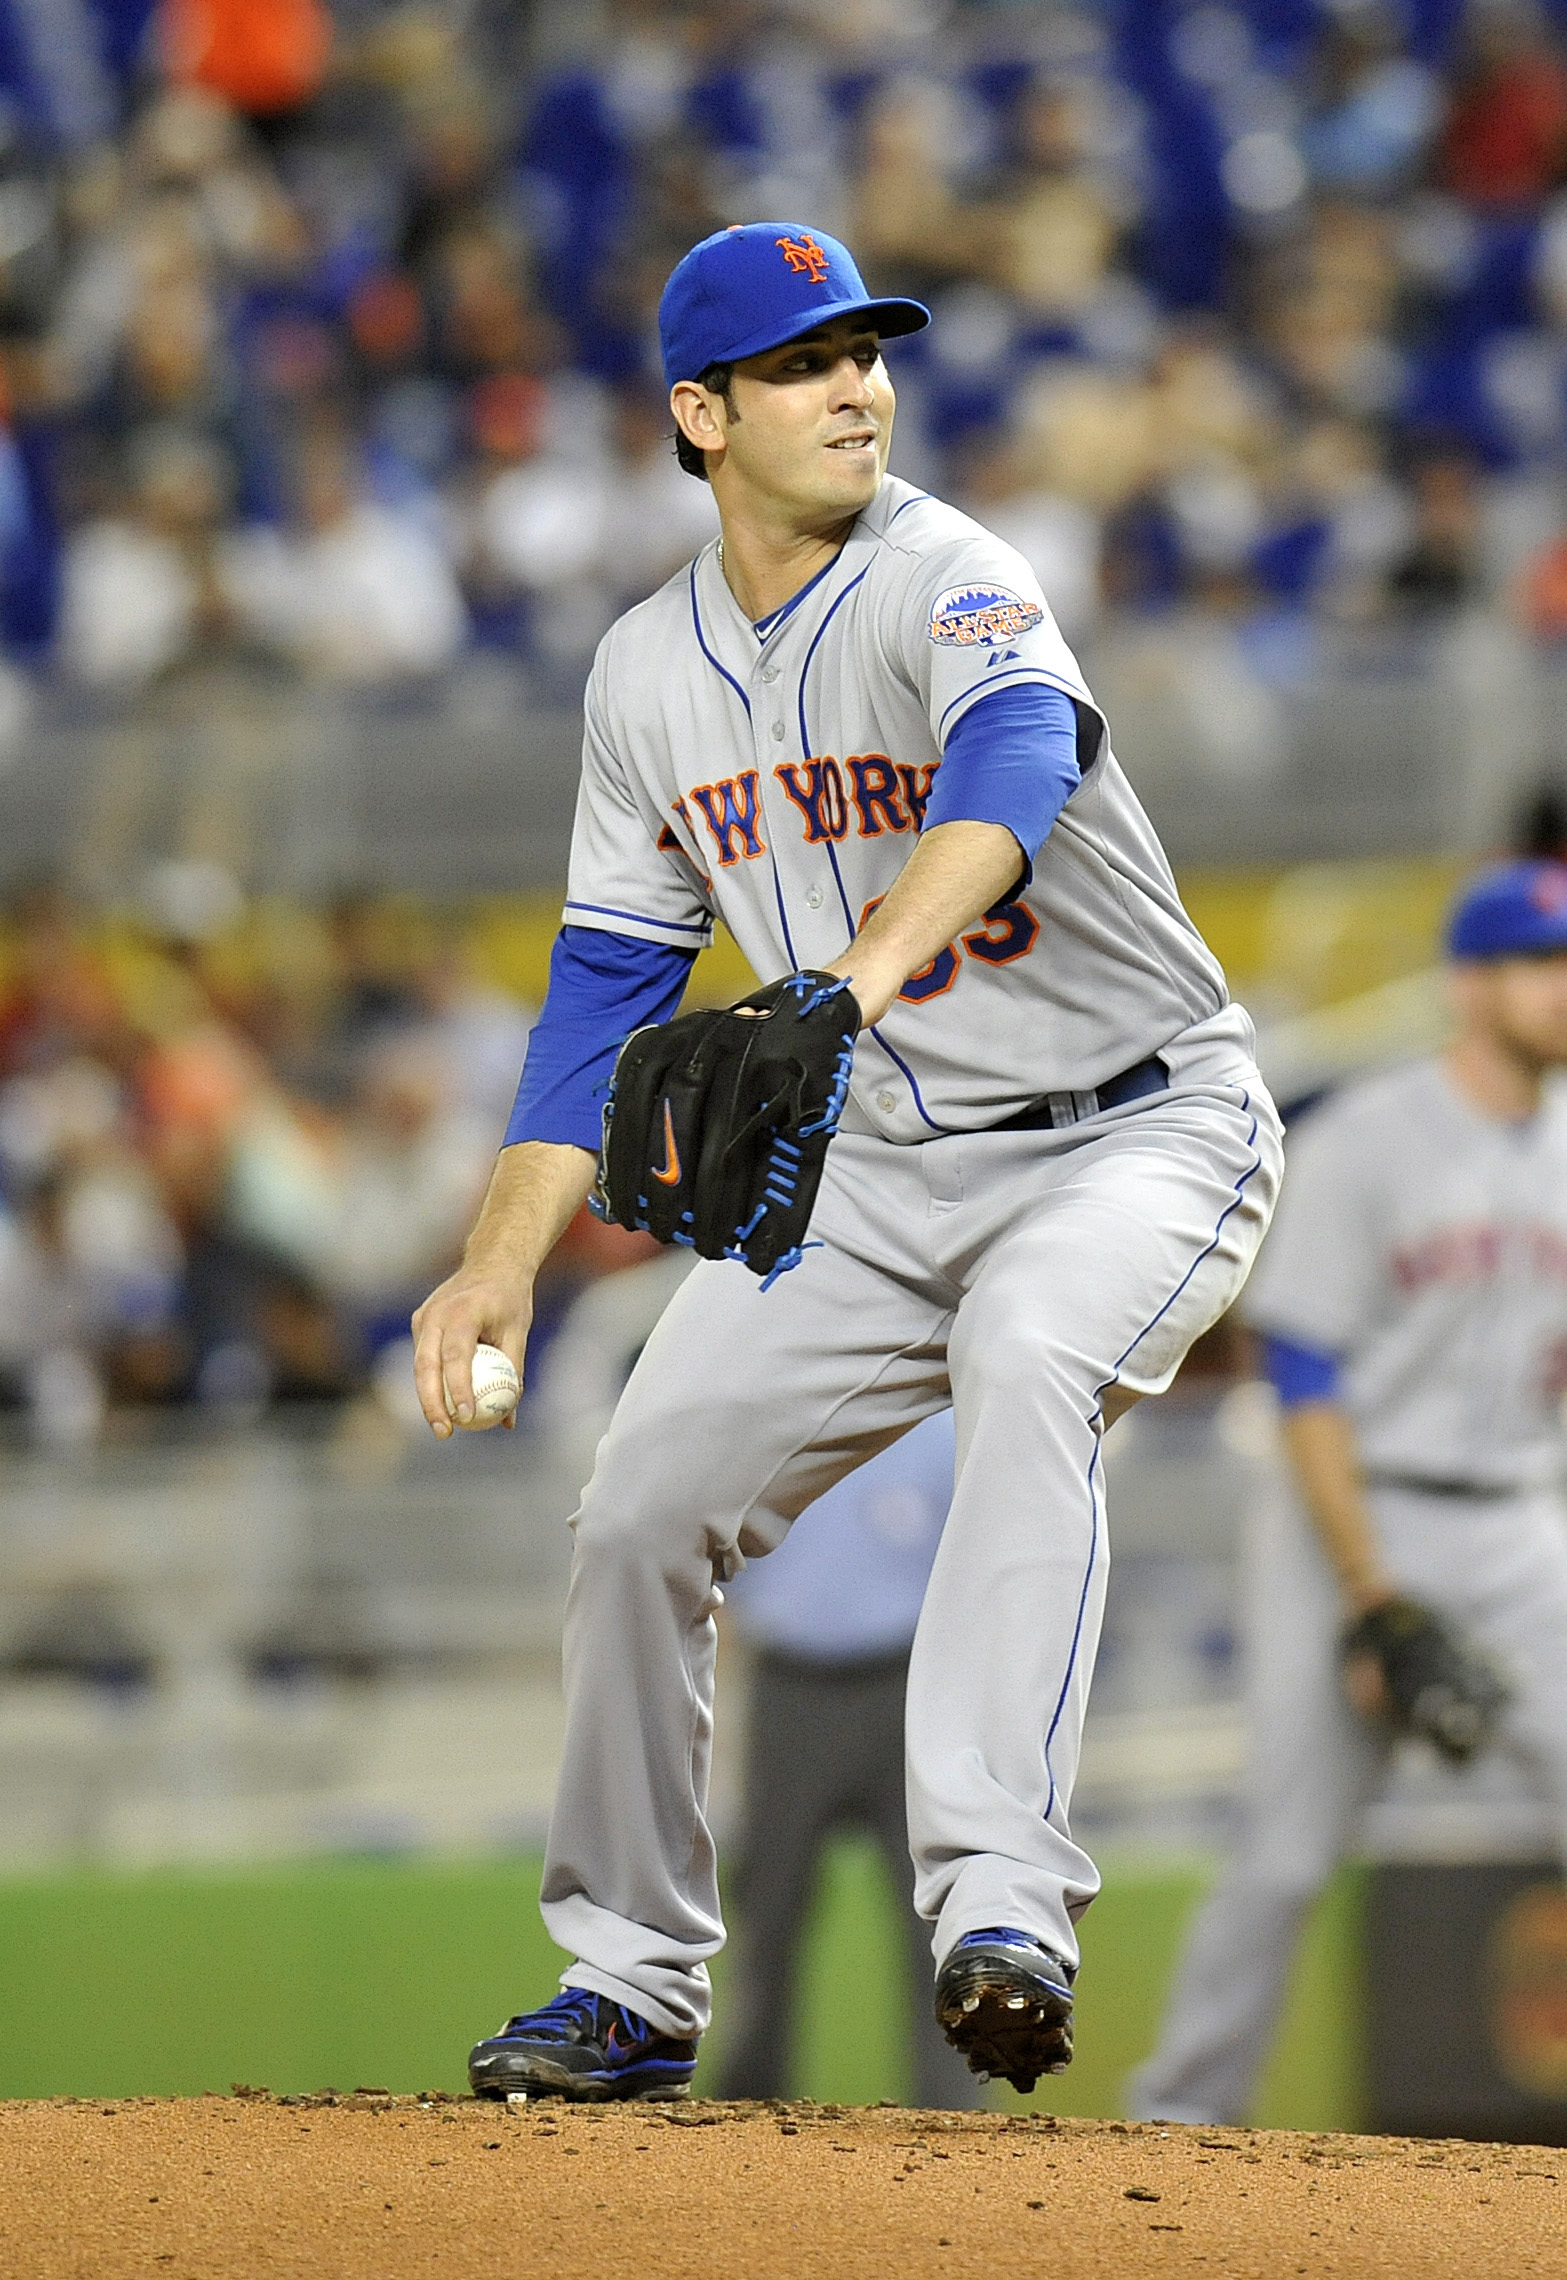 When it comes to whiffing hitters, Matt Harvey is no Doc Gooden. (USAT)